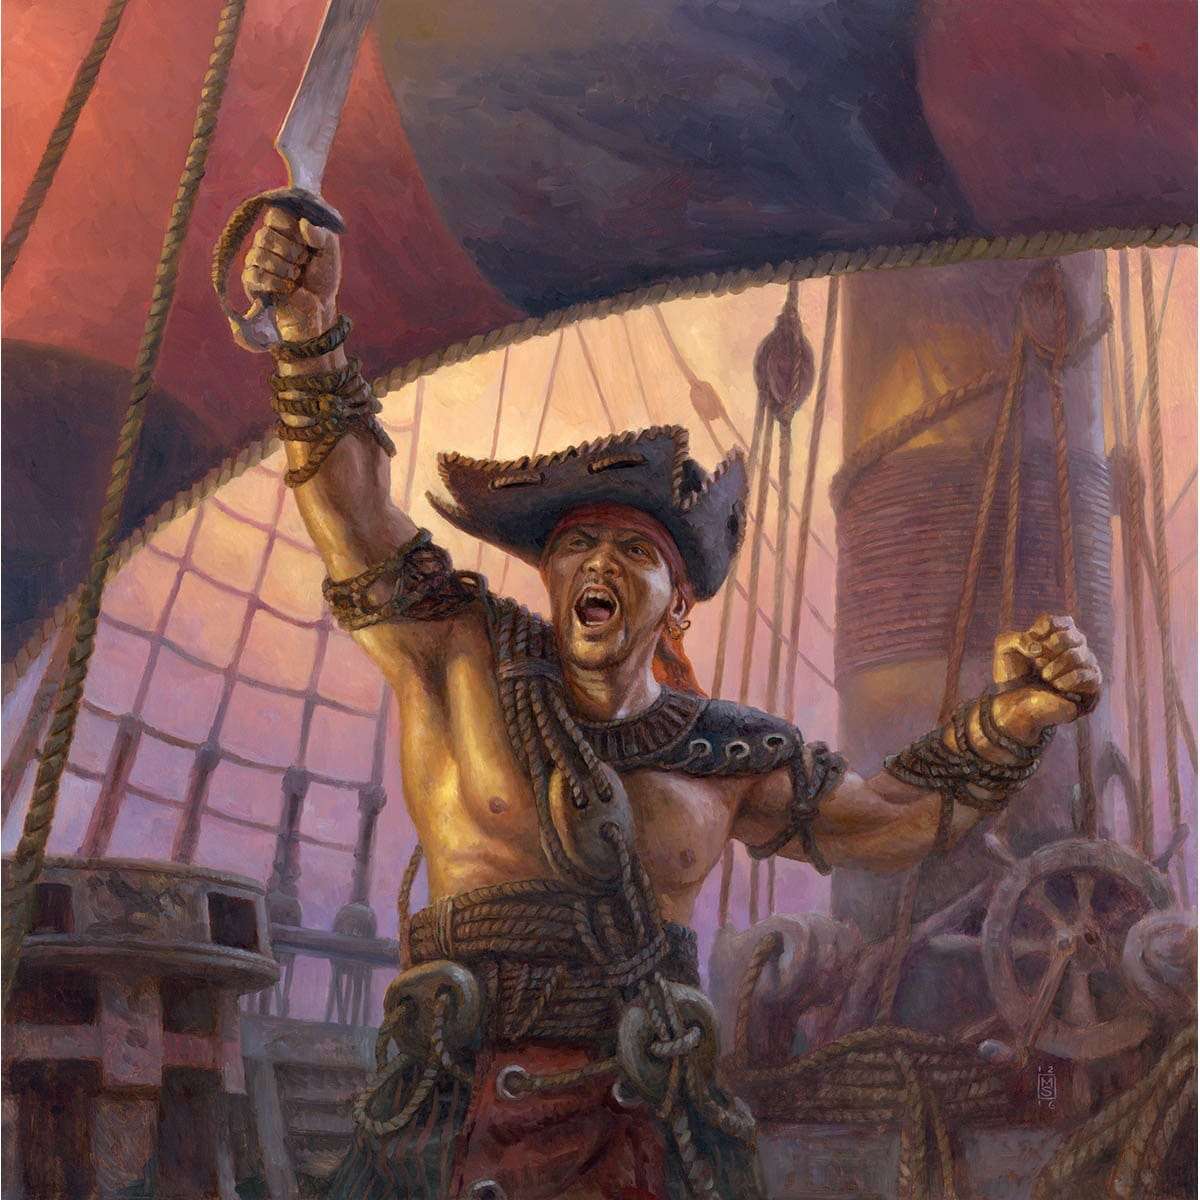 Pirate Token Print - Print - Original Magic Art - Accessories for Magic the Gathering and other card games